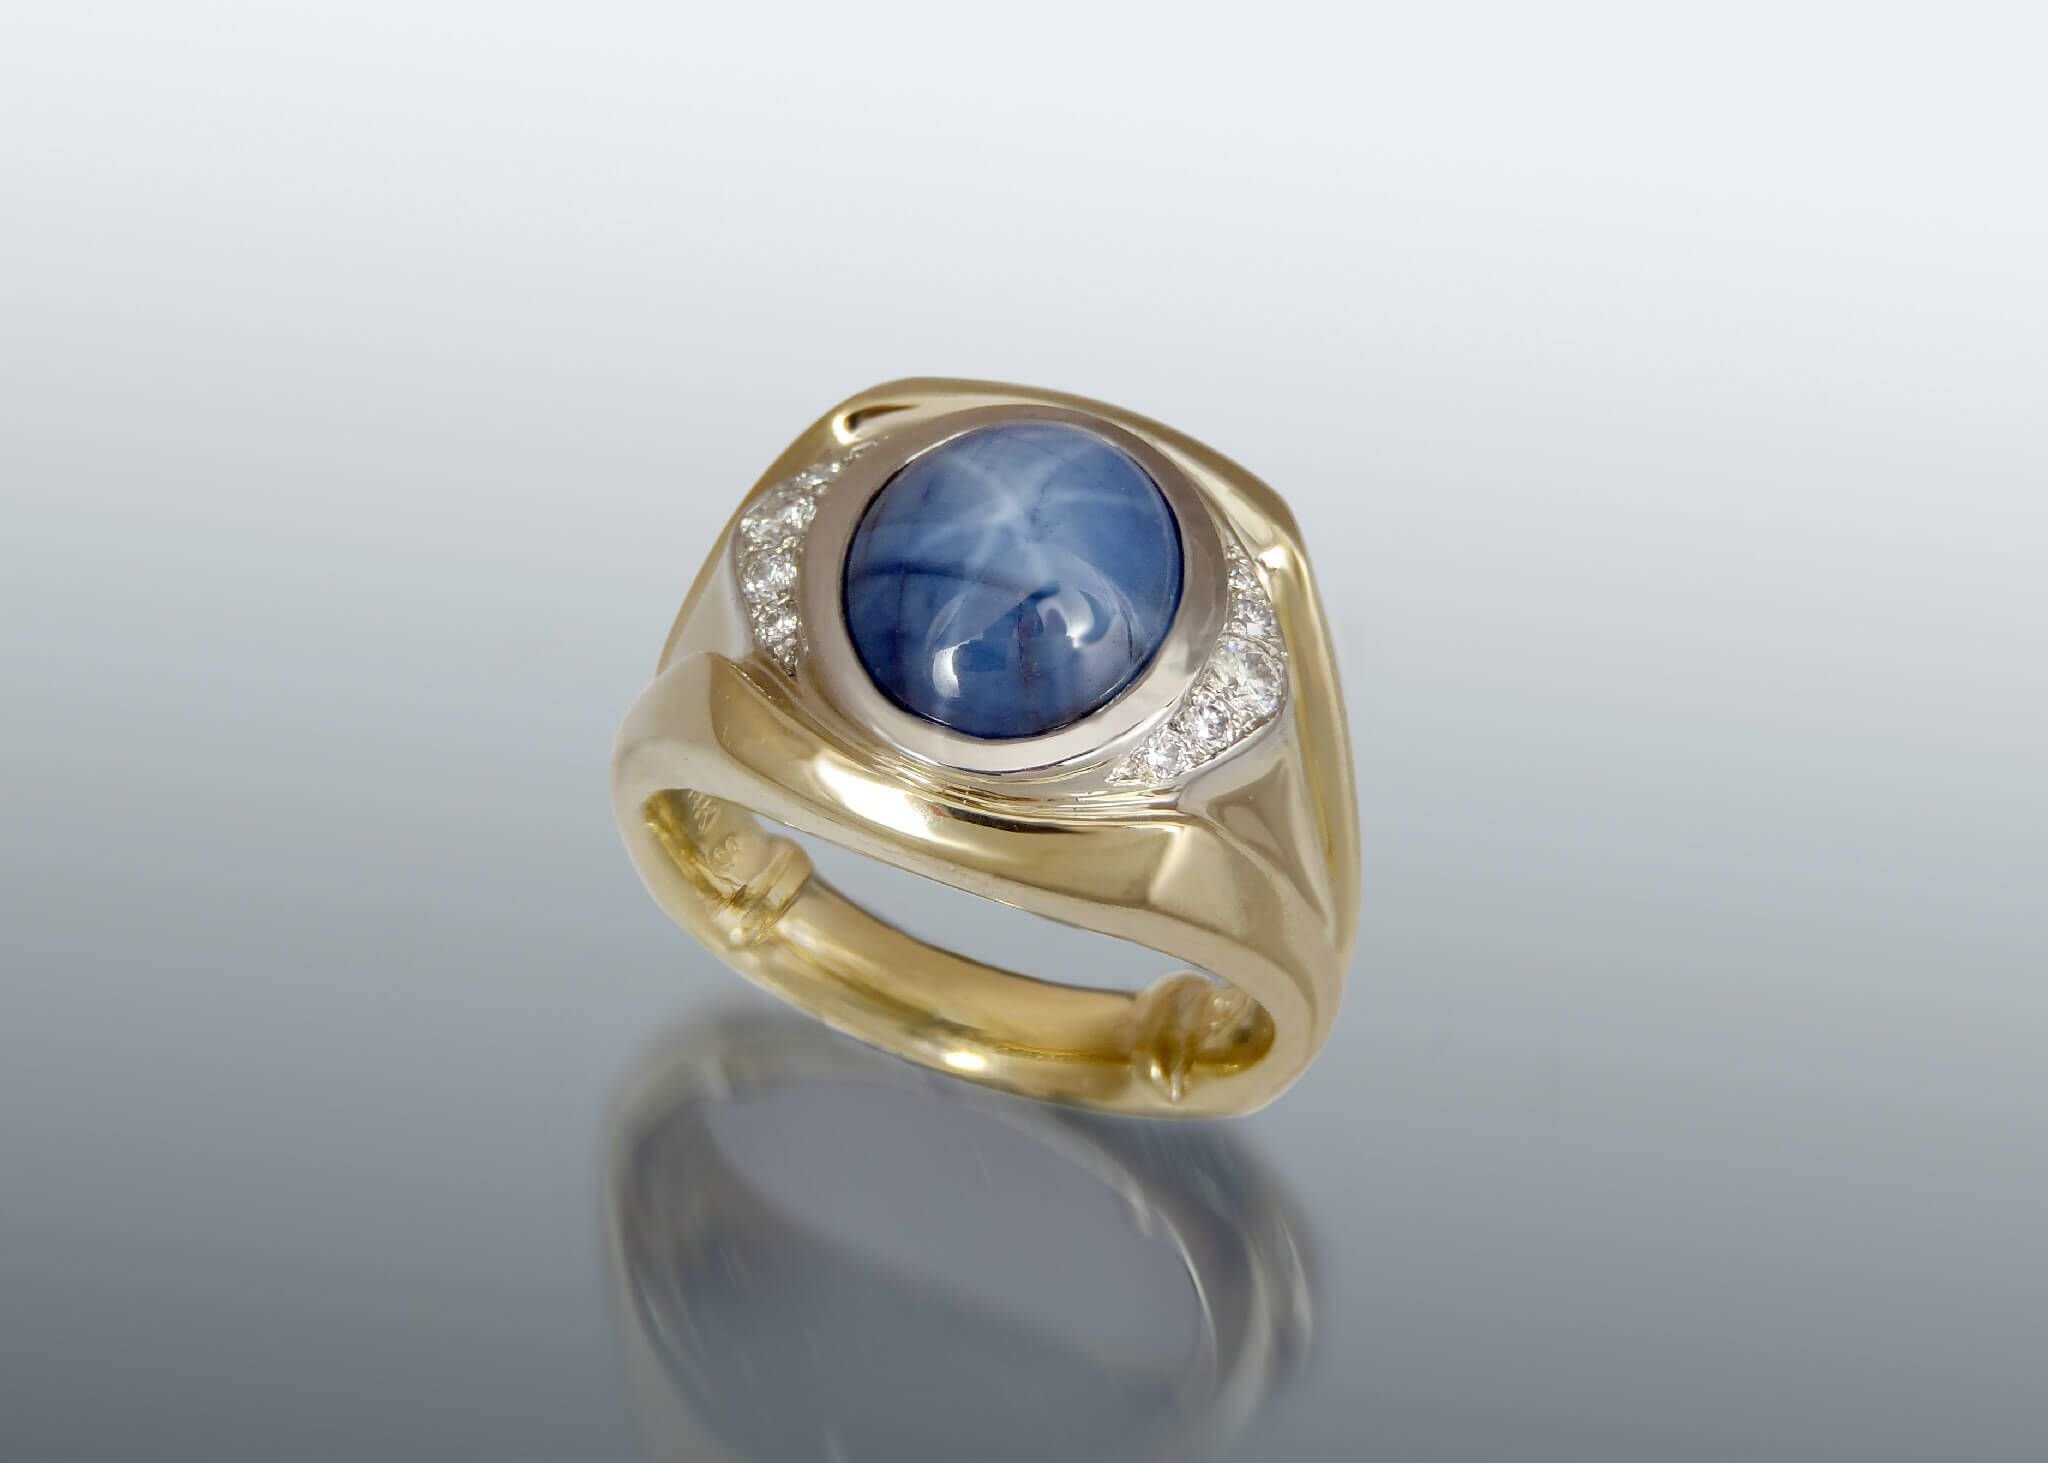 consignment star ring blue upscale sapphire diamond gold